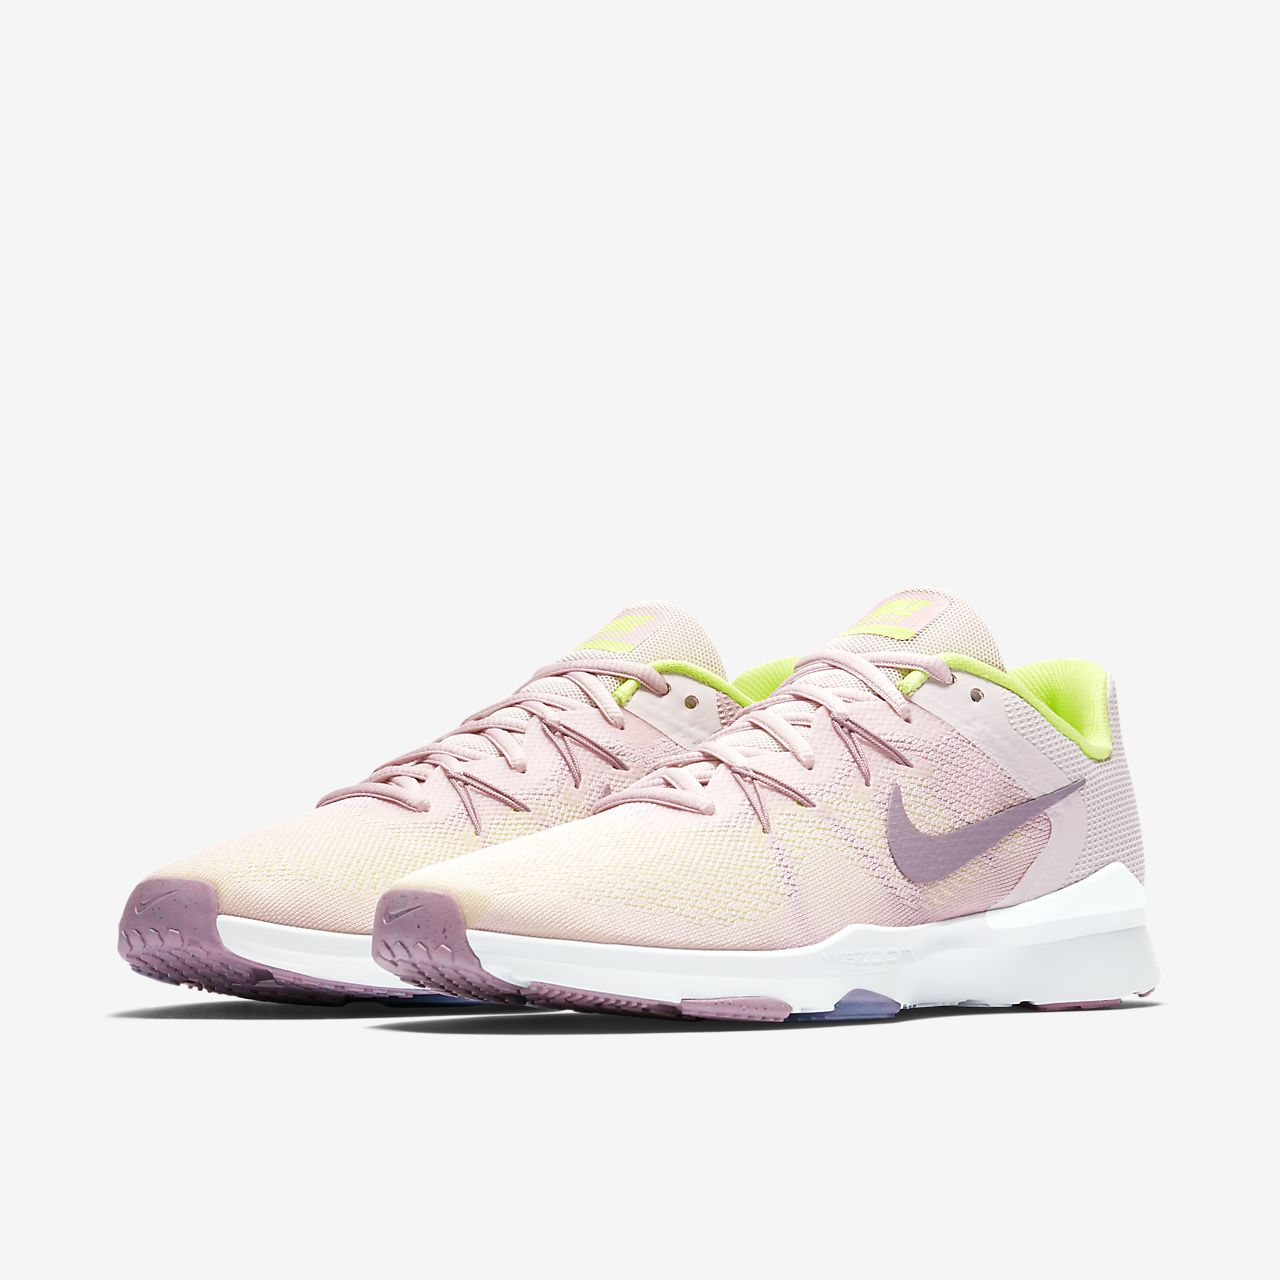 exclusif à vendre wiki pas cher Nike Free Roses Pourpre Tr2 réduction ebay qSwZ2OxOAd